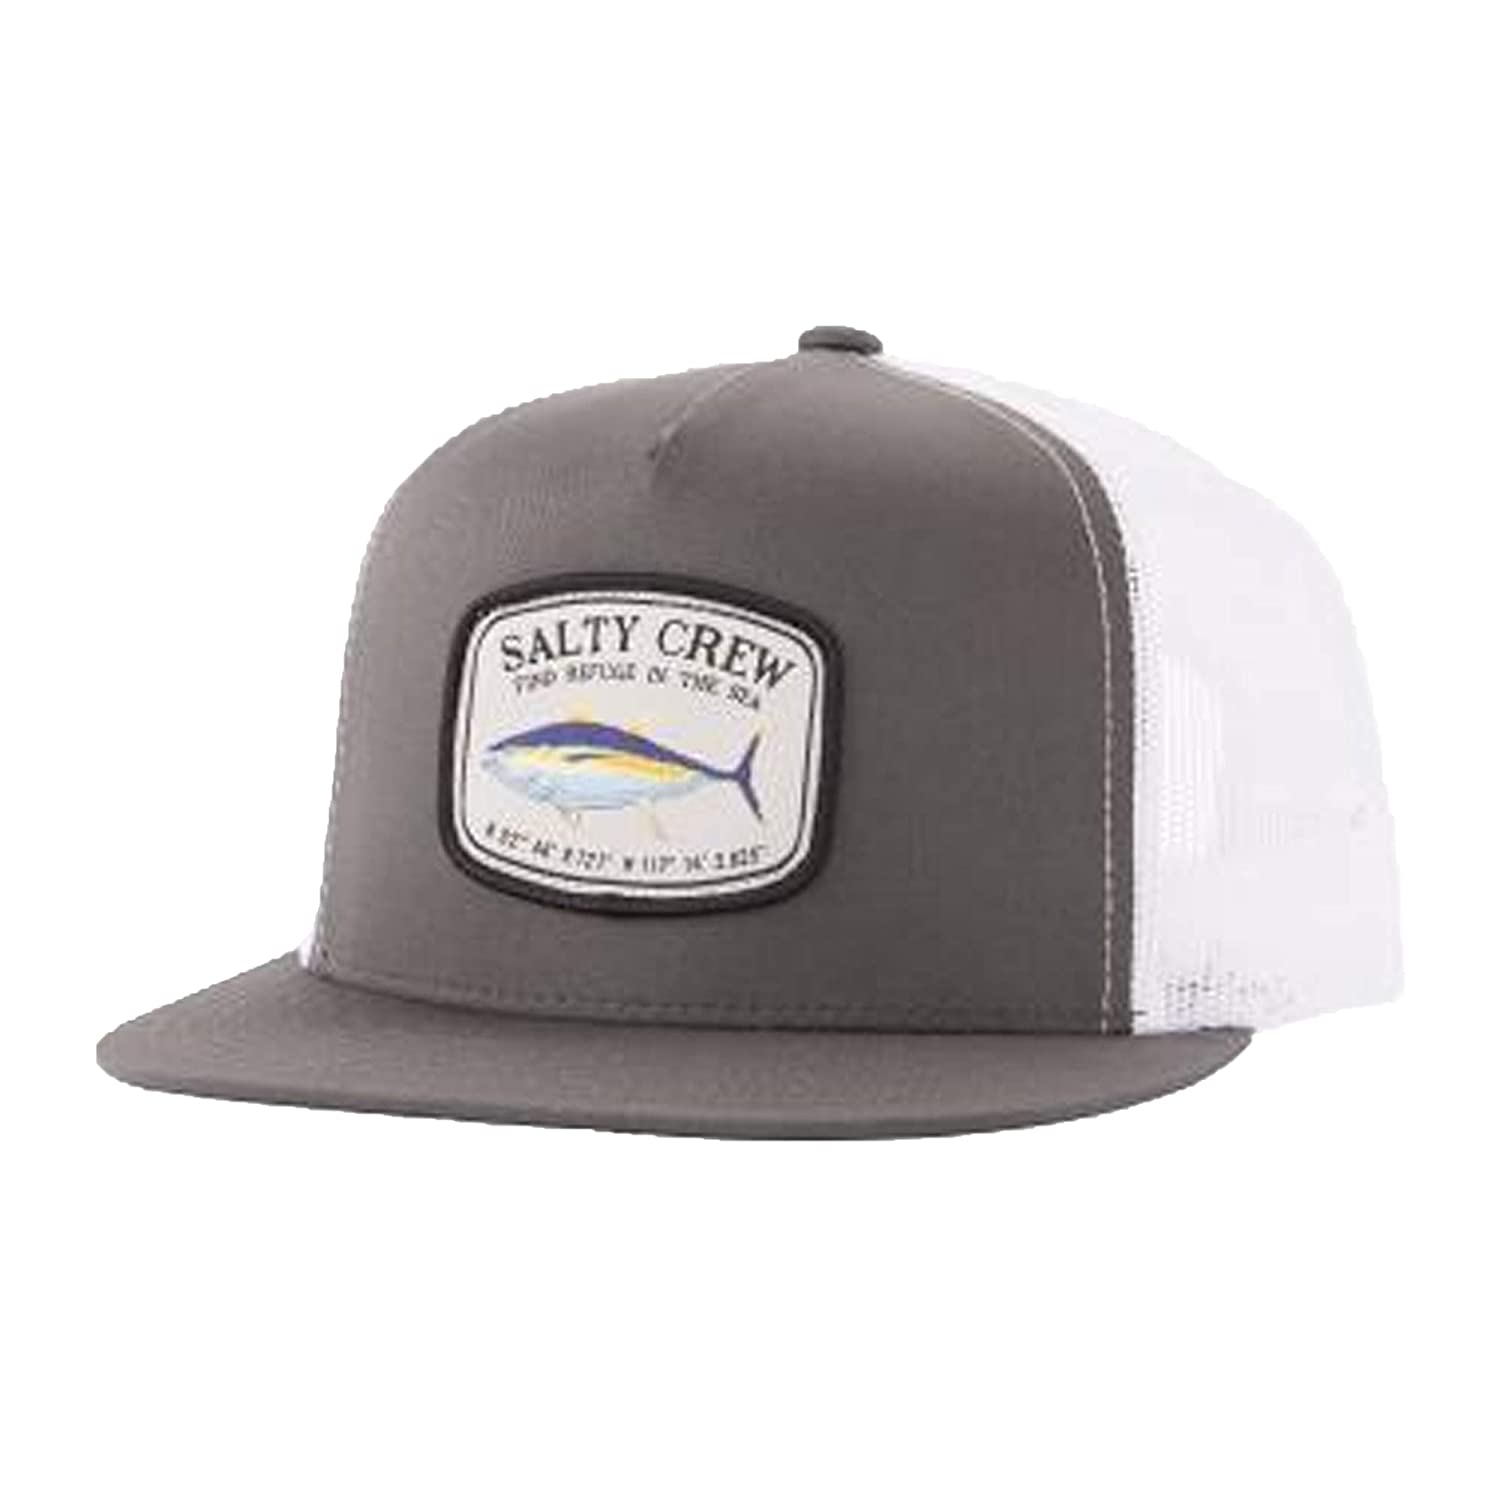 new style 3cc10 1005c Amazon.com  Salty Crew Men s Pacific Trucker Hat, Dark Grey White  (DRKGRYWT DRKGYWT), One Size  Clothing